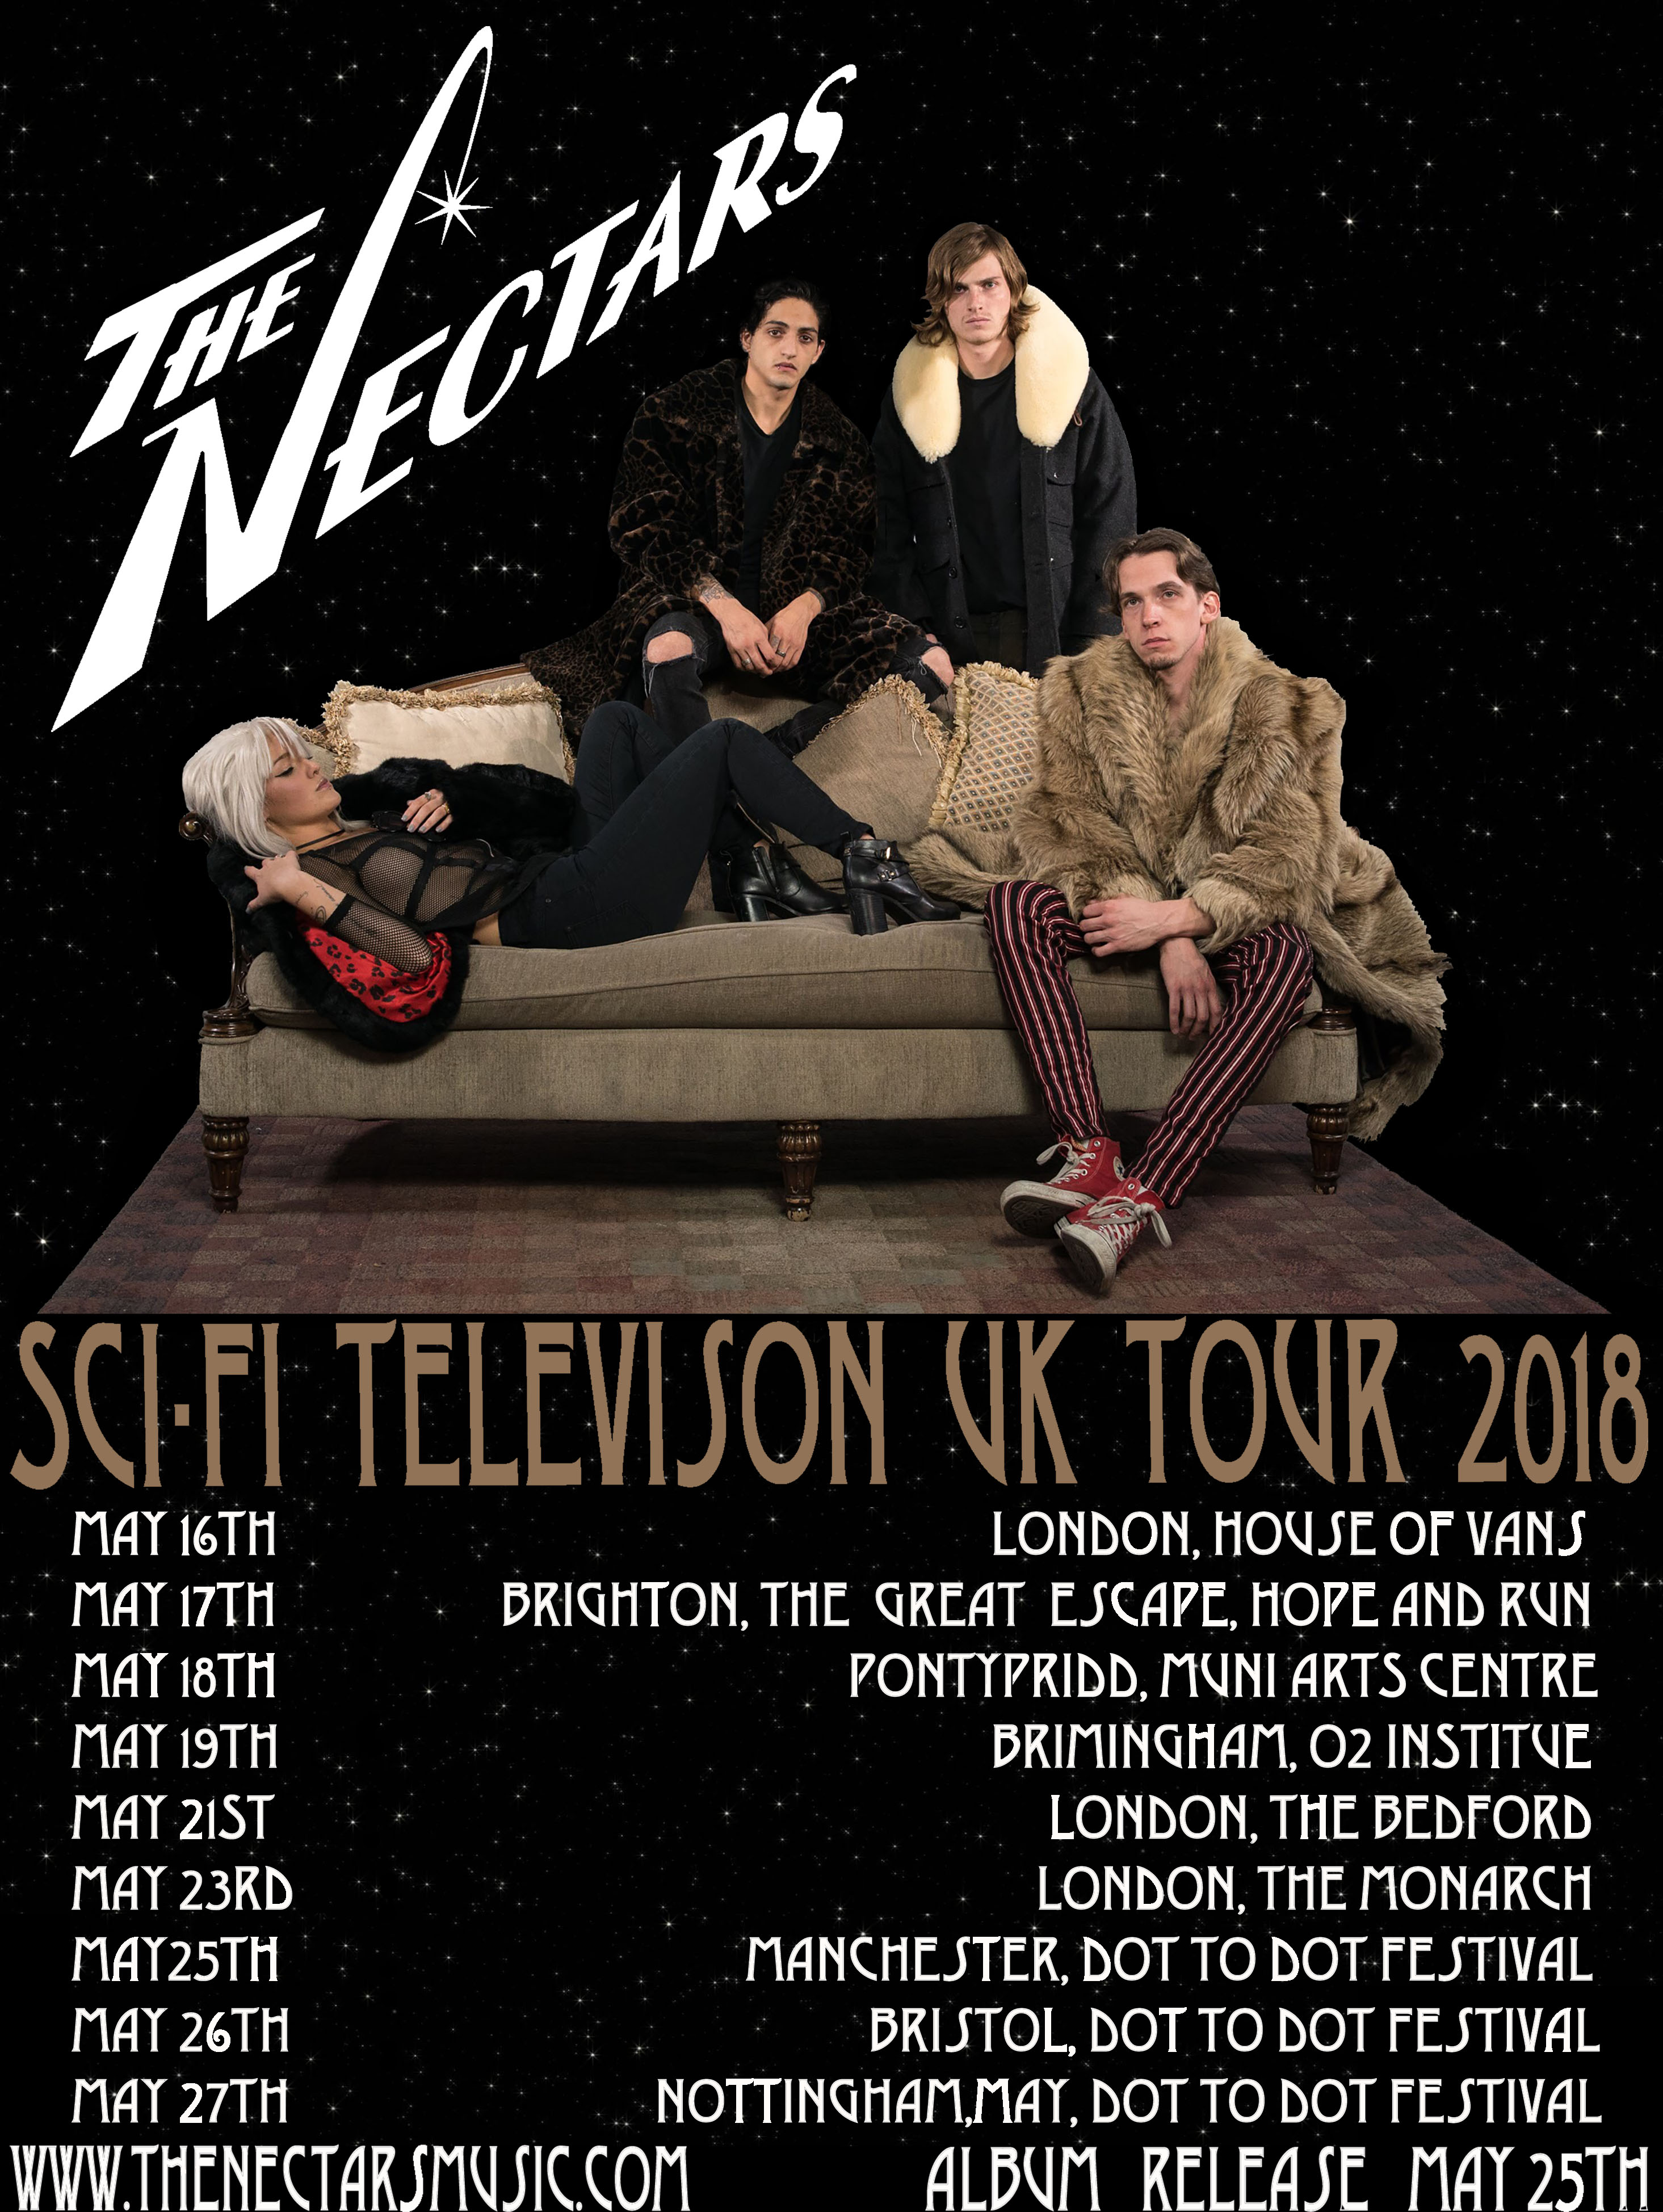 The Nectars Europe tour flyer